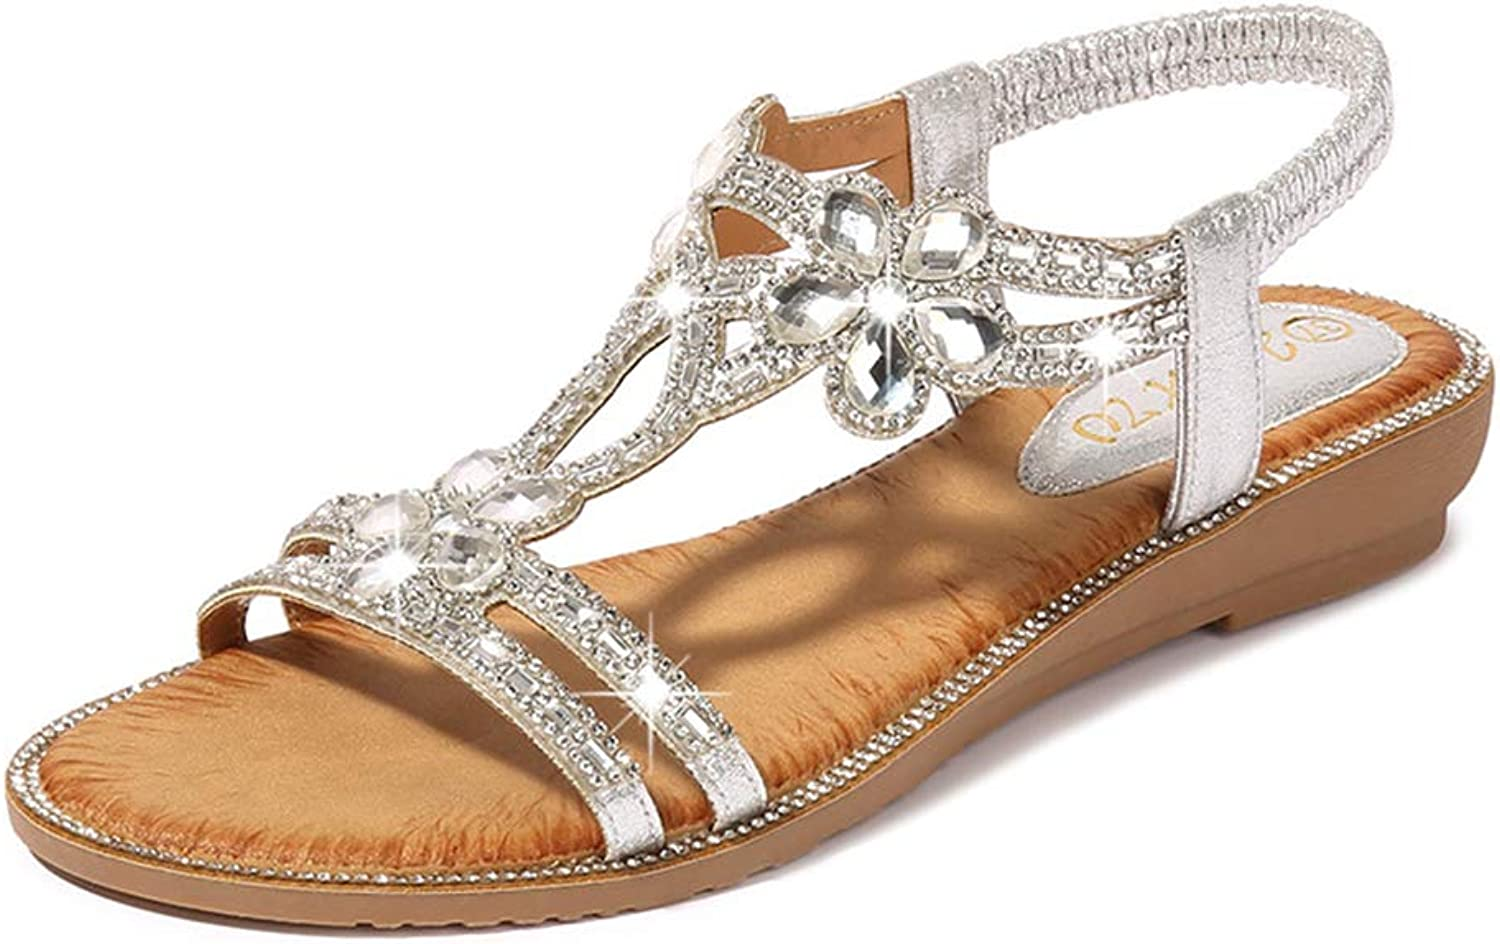 Tuoup Women's Stylish Leather Jeweled Floral Sandles Summer Sandals